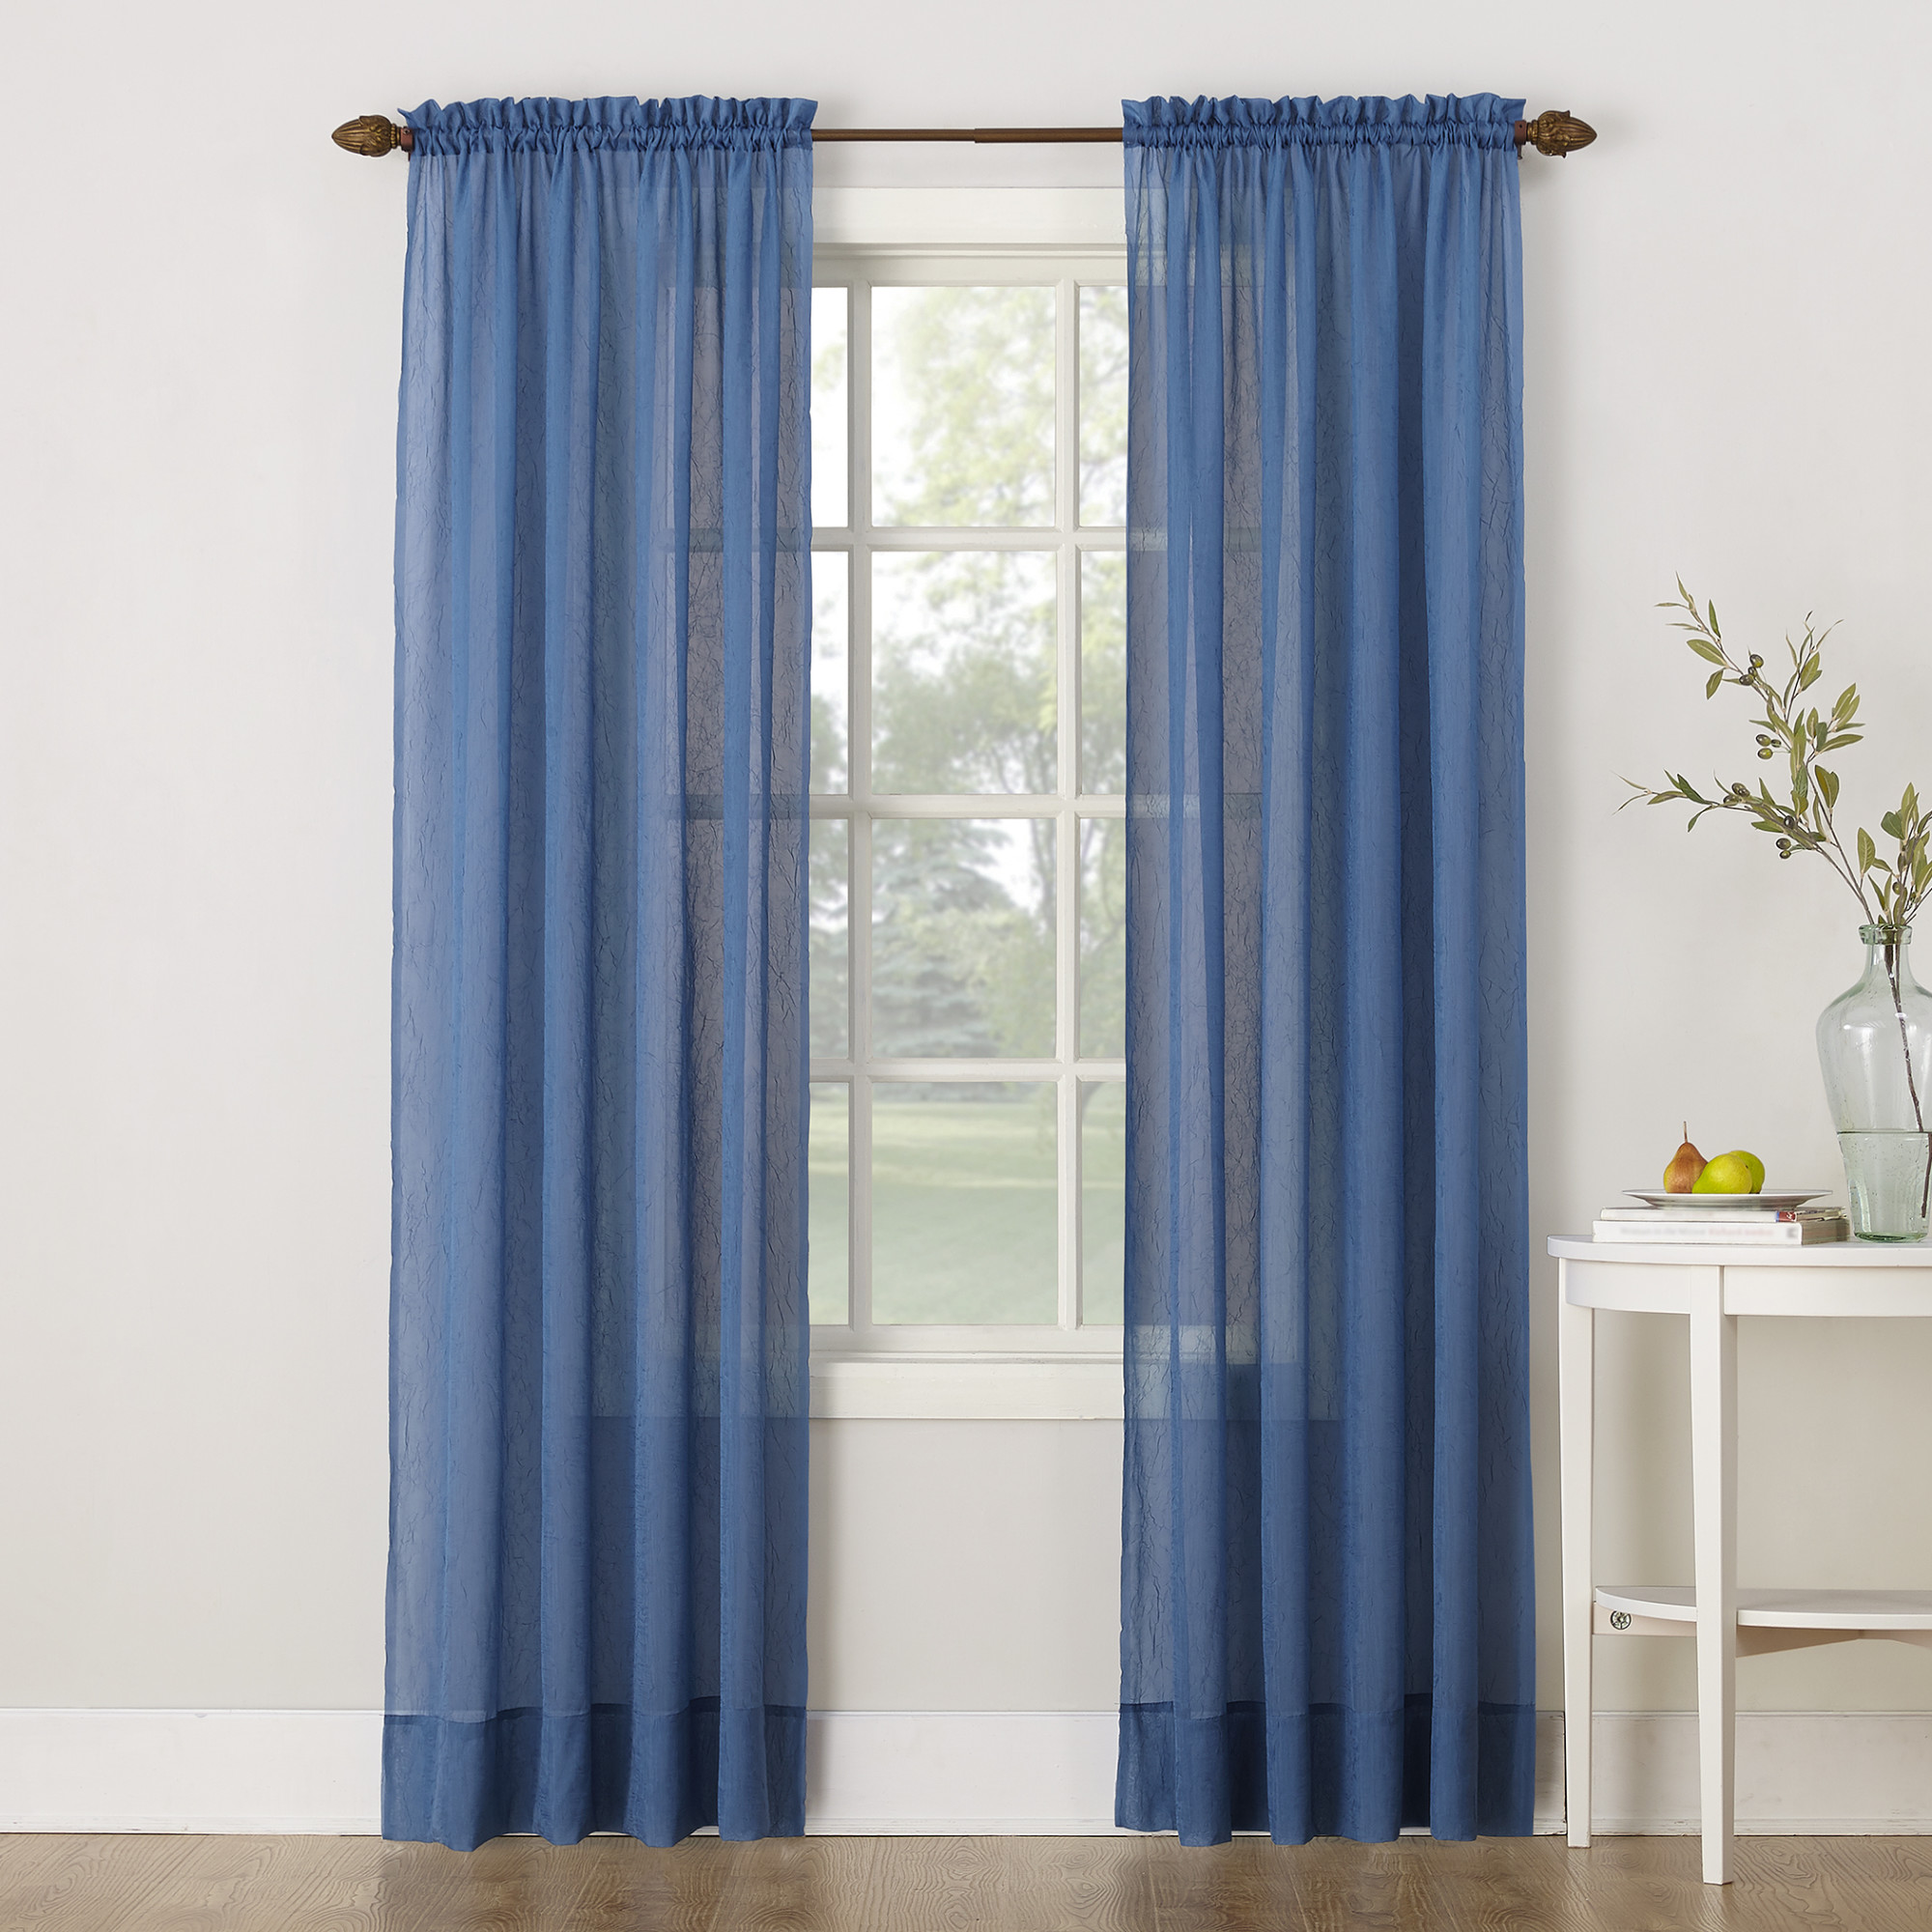 No. 918 Erica Crushed Sheer Voile Rod Pocket Curtain Panel by S. Lichtenberg